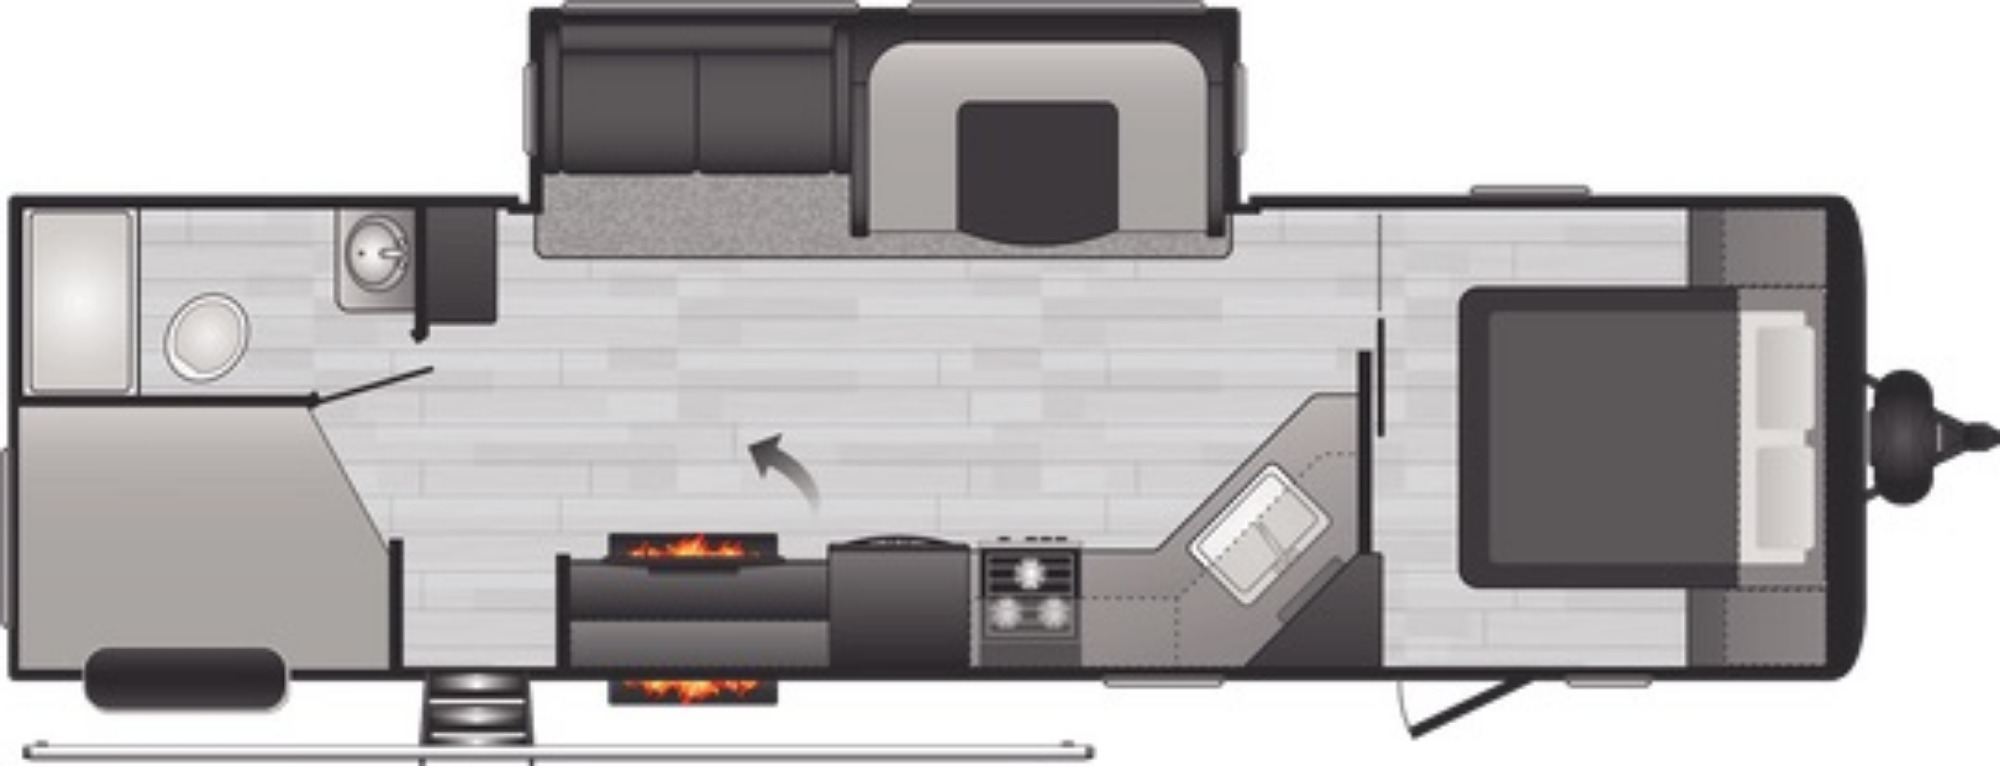 View Floor Plan for 2021 KEYSTONE HIDEOUT 29DFSWE